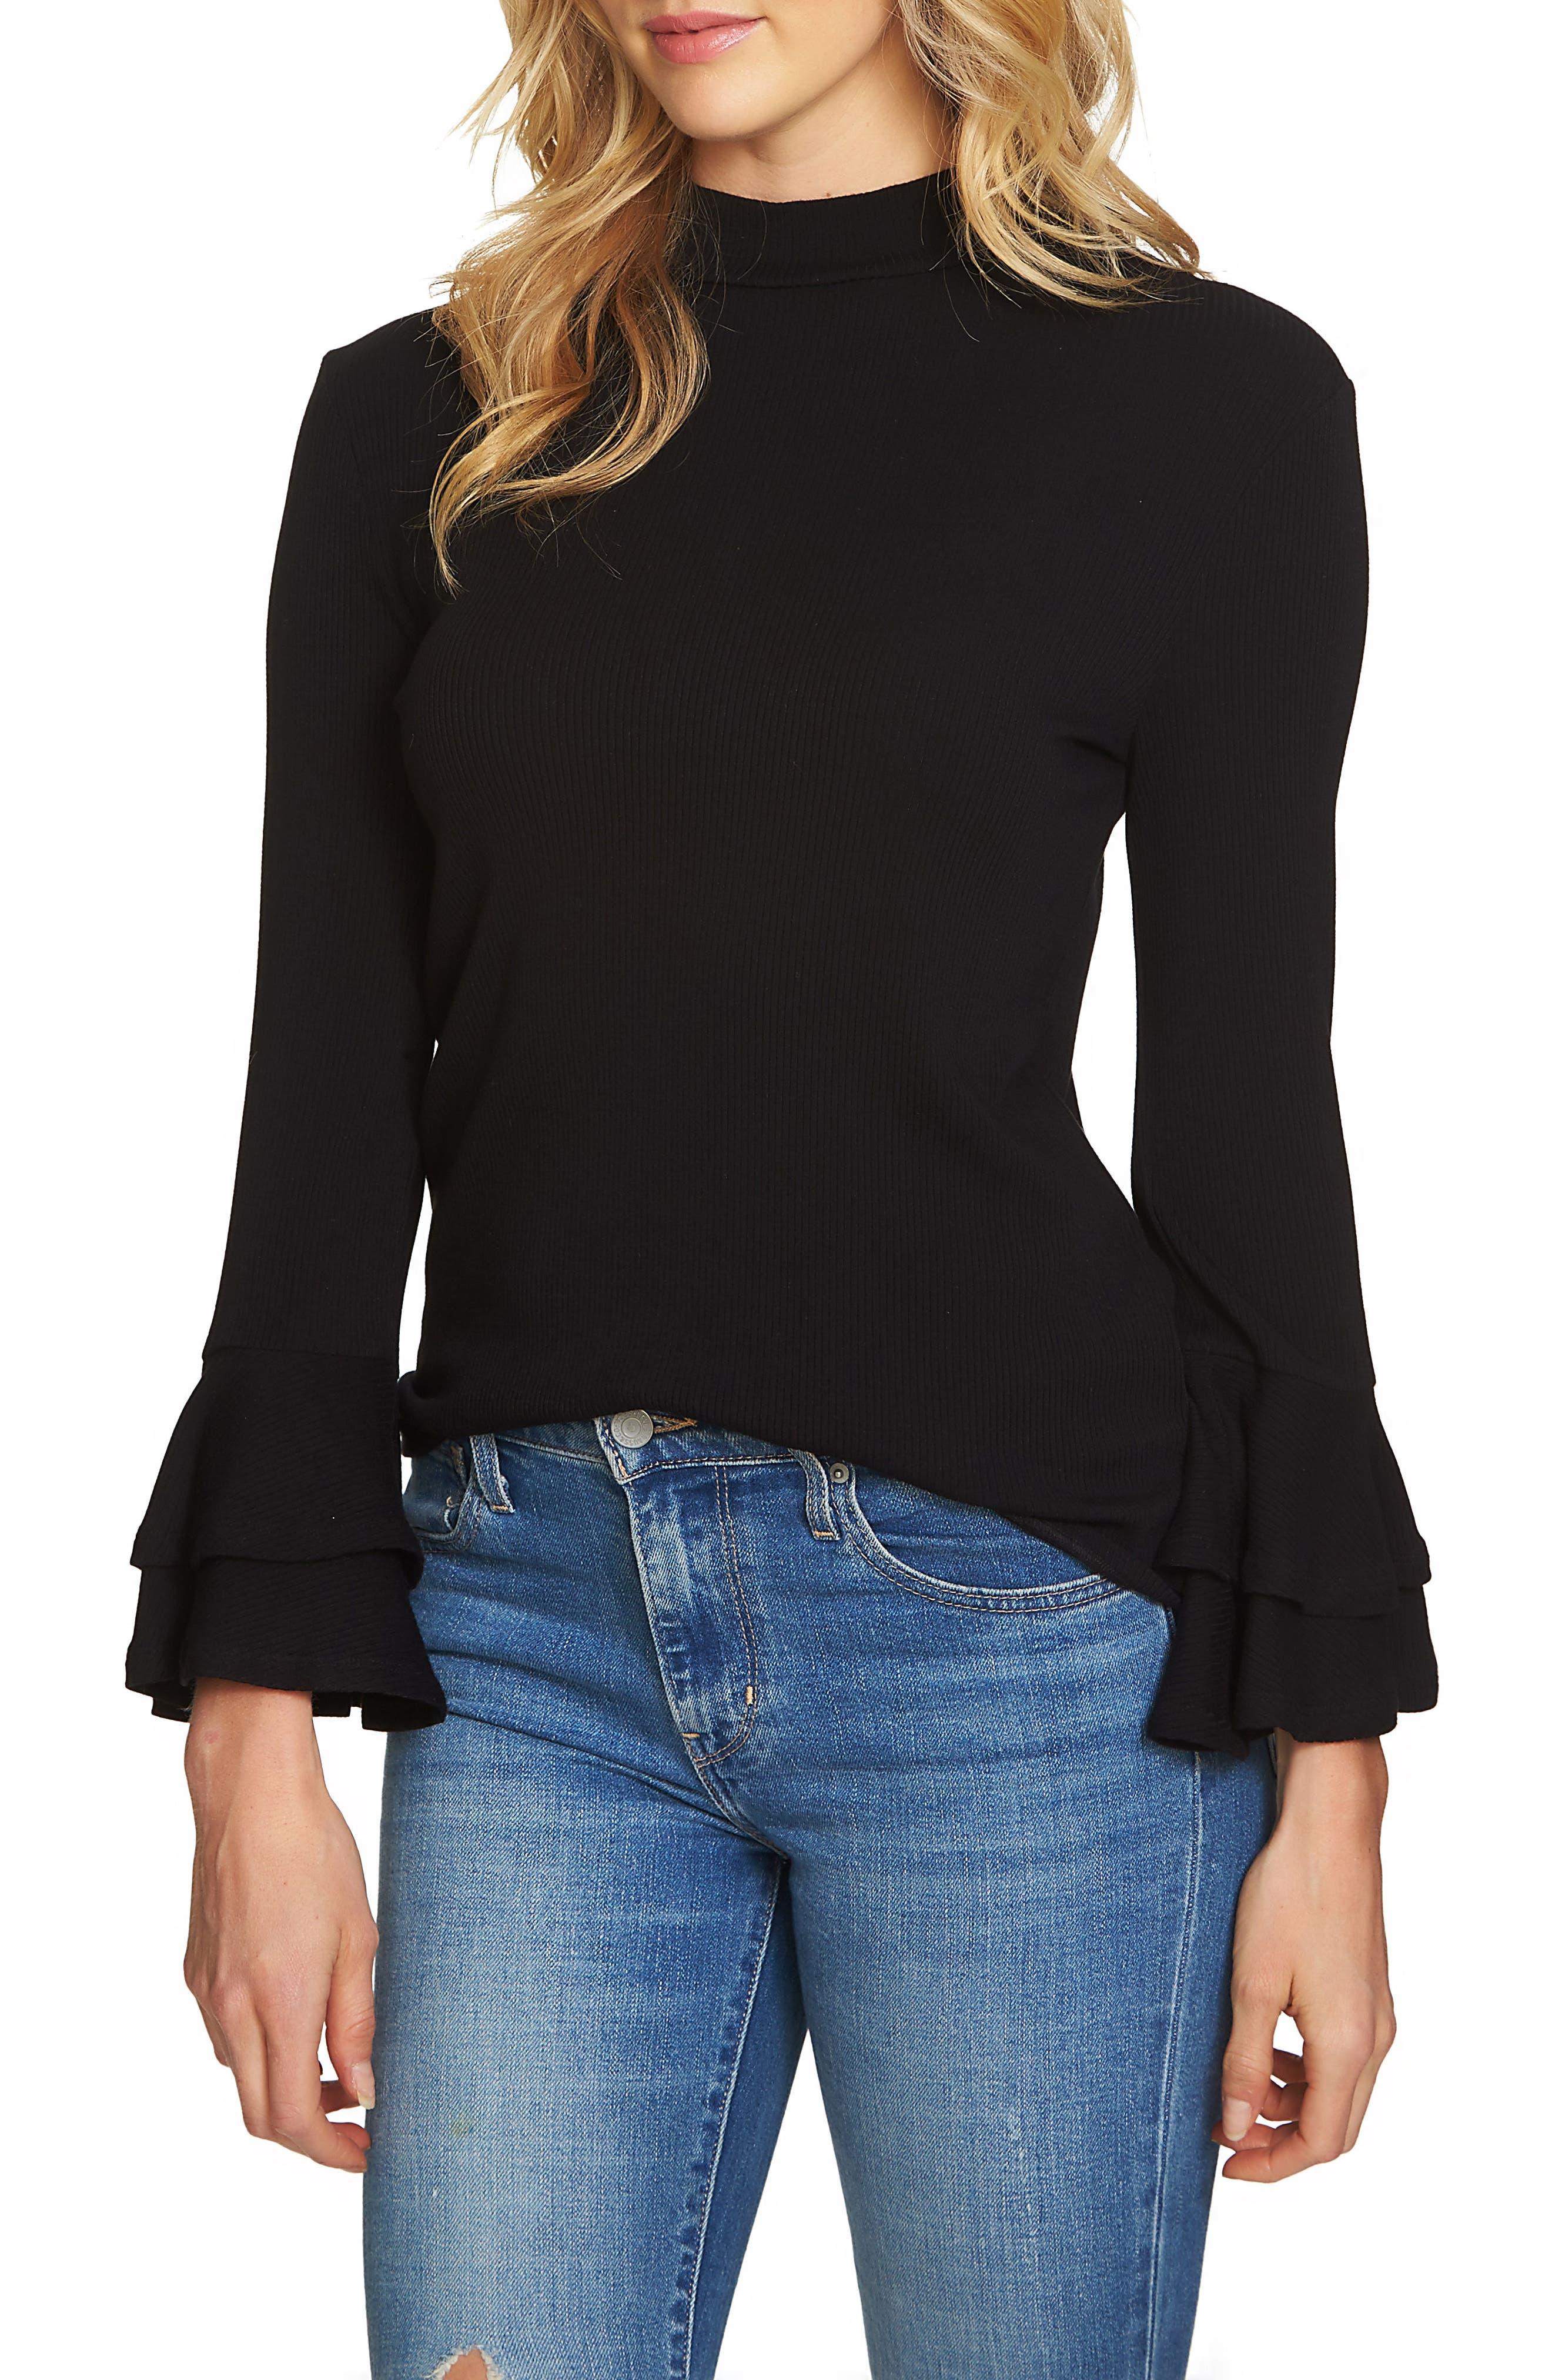 Main Image - 1.STATE Bell Sleeve Top